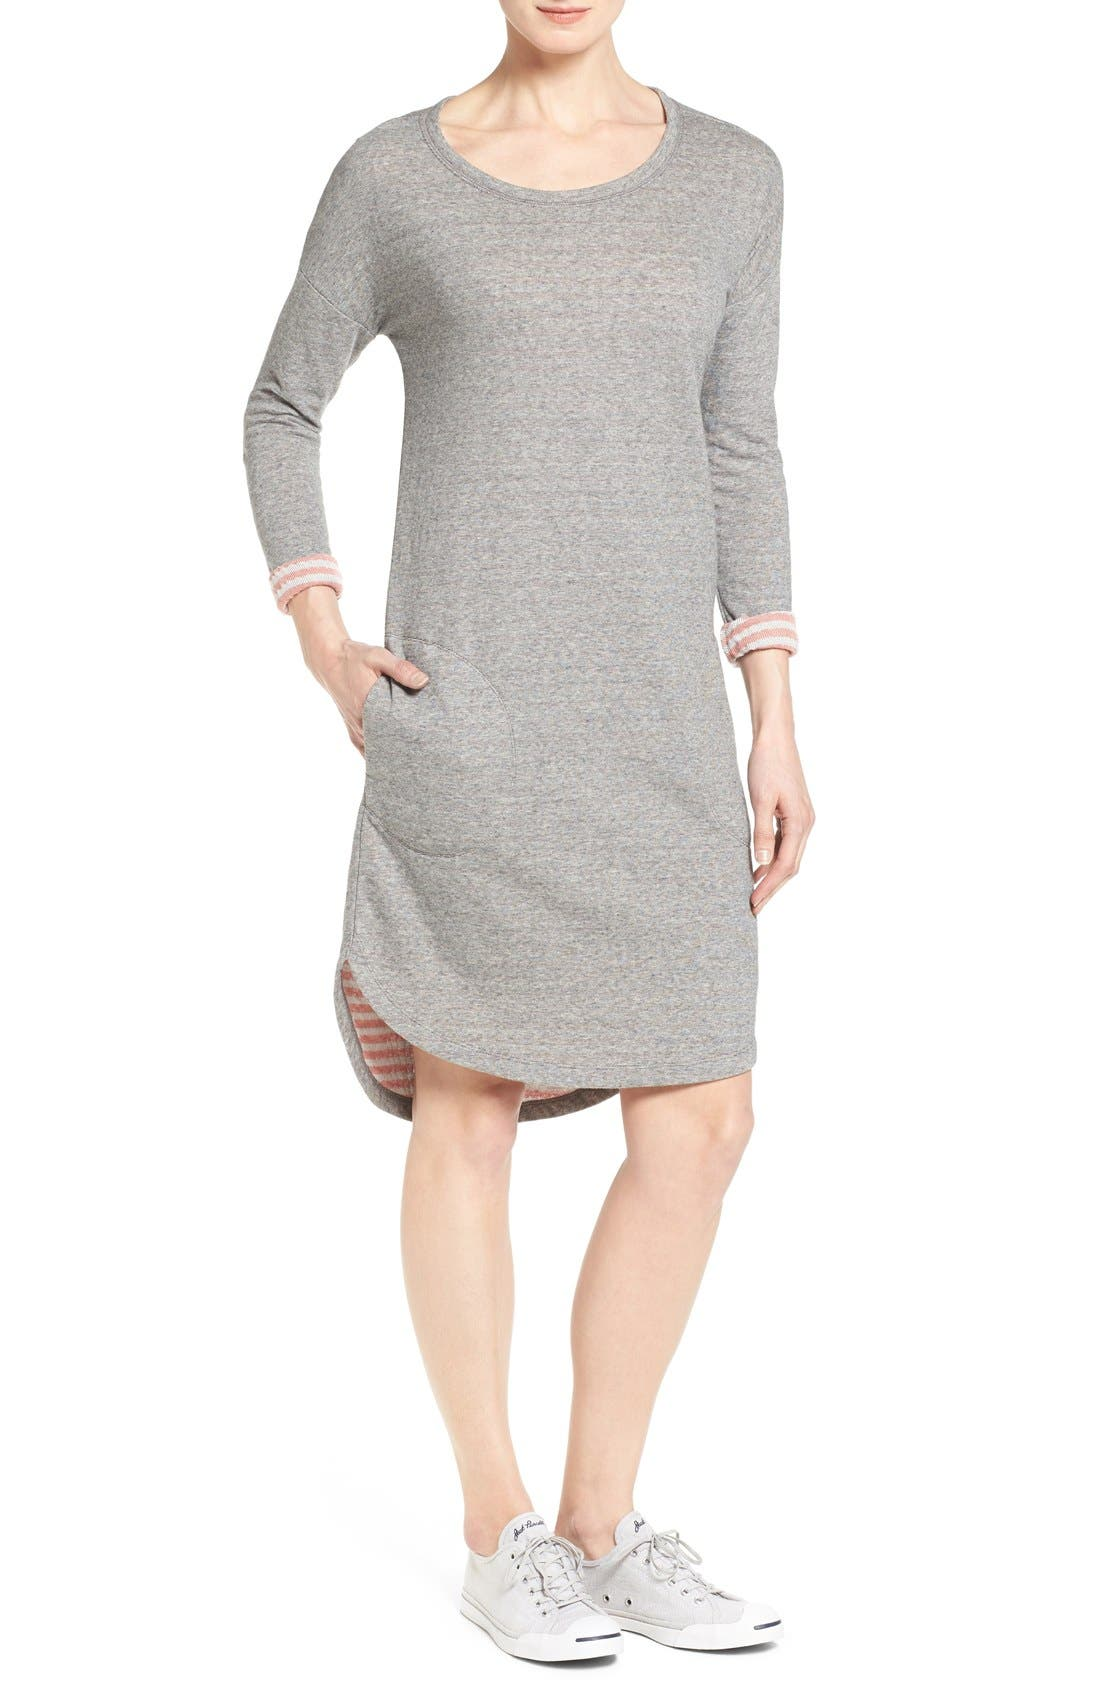 Contrast Cuff Double Knit Dress,                             Main thumbnail 1, color,                             Grey- Coral Pattern